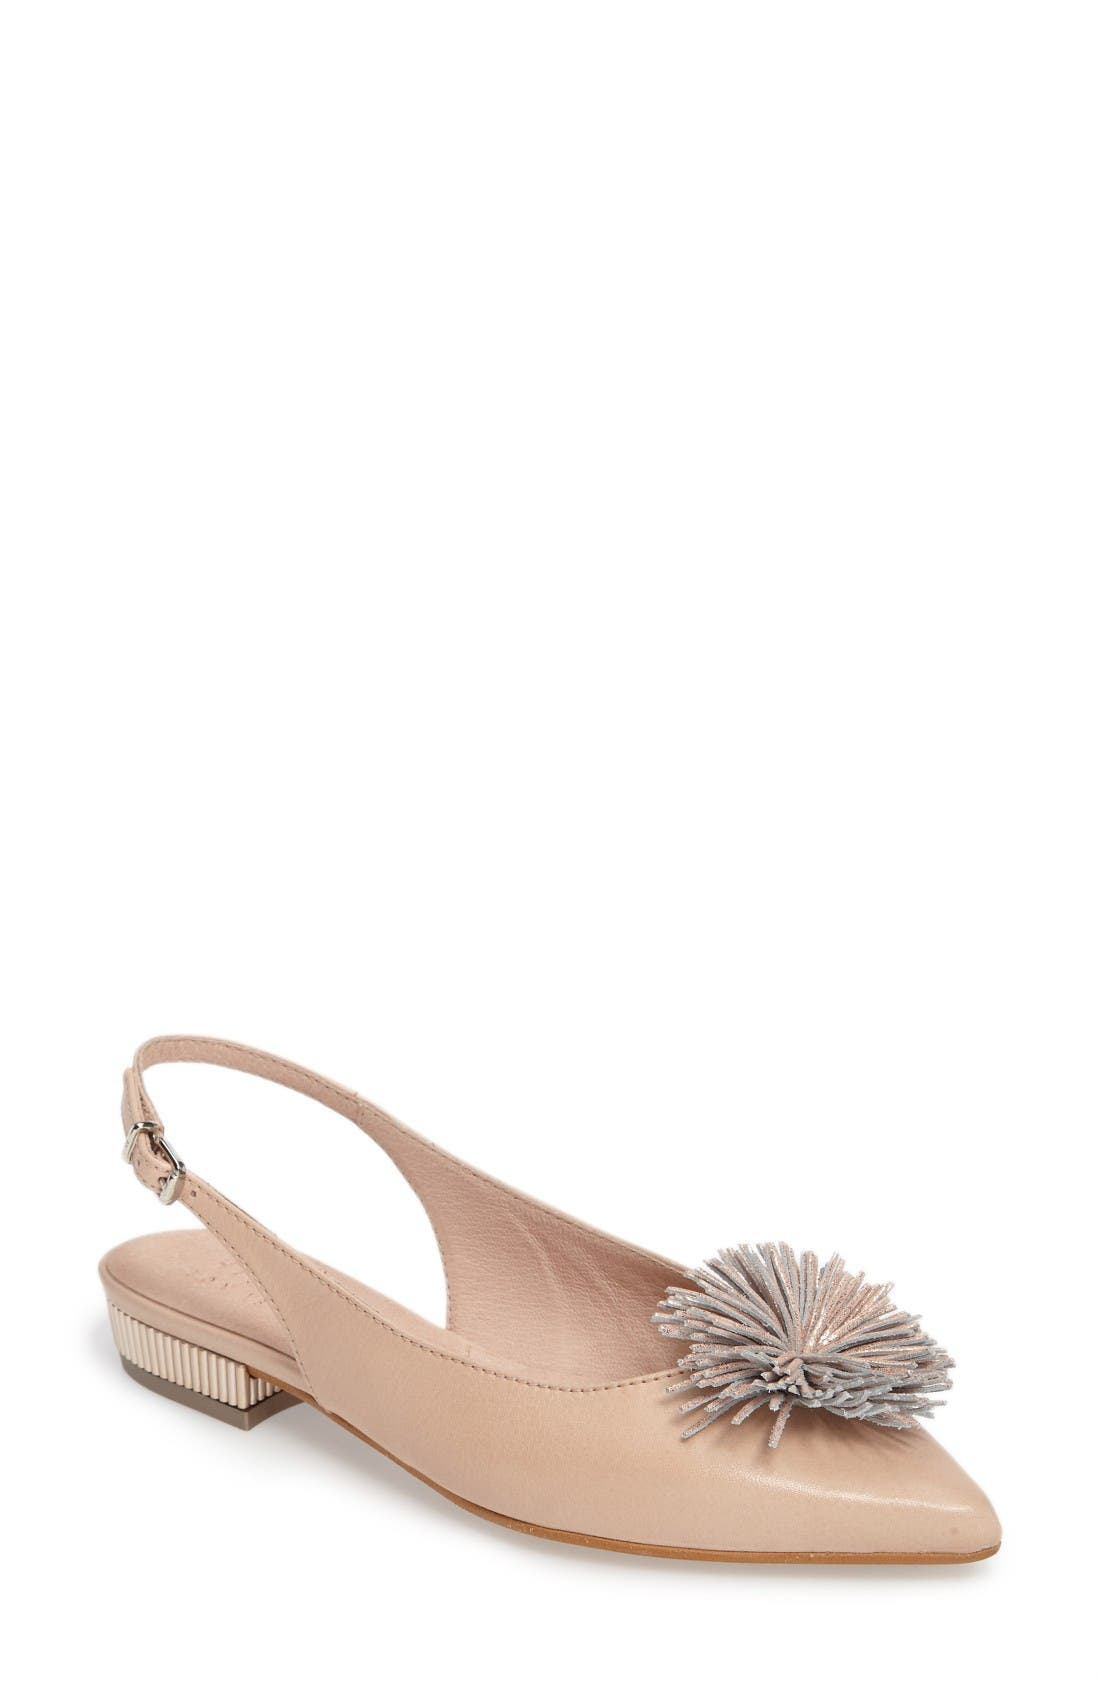 Freya Pompom Slingback Flat,                             Main thumbnail 1, color,                             Soho Ecru Leather